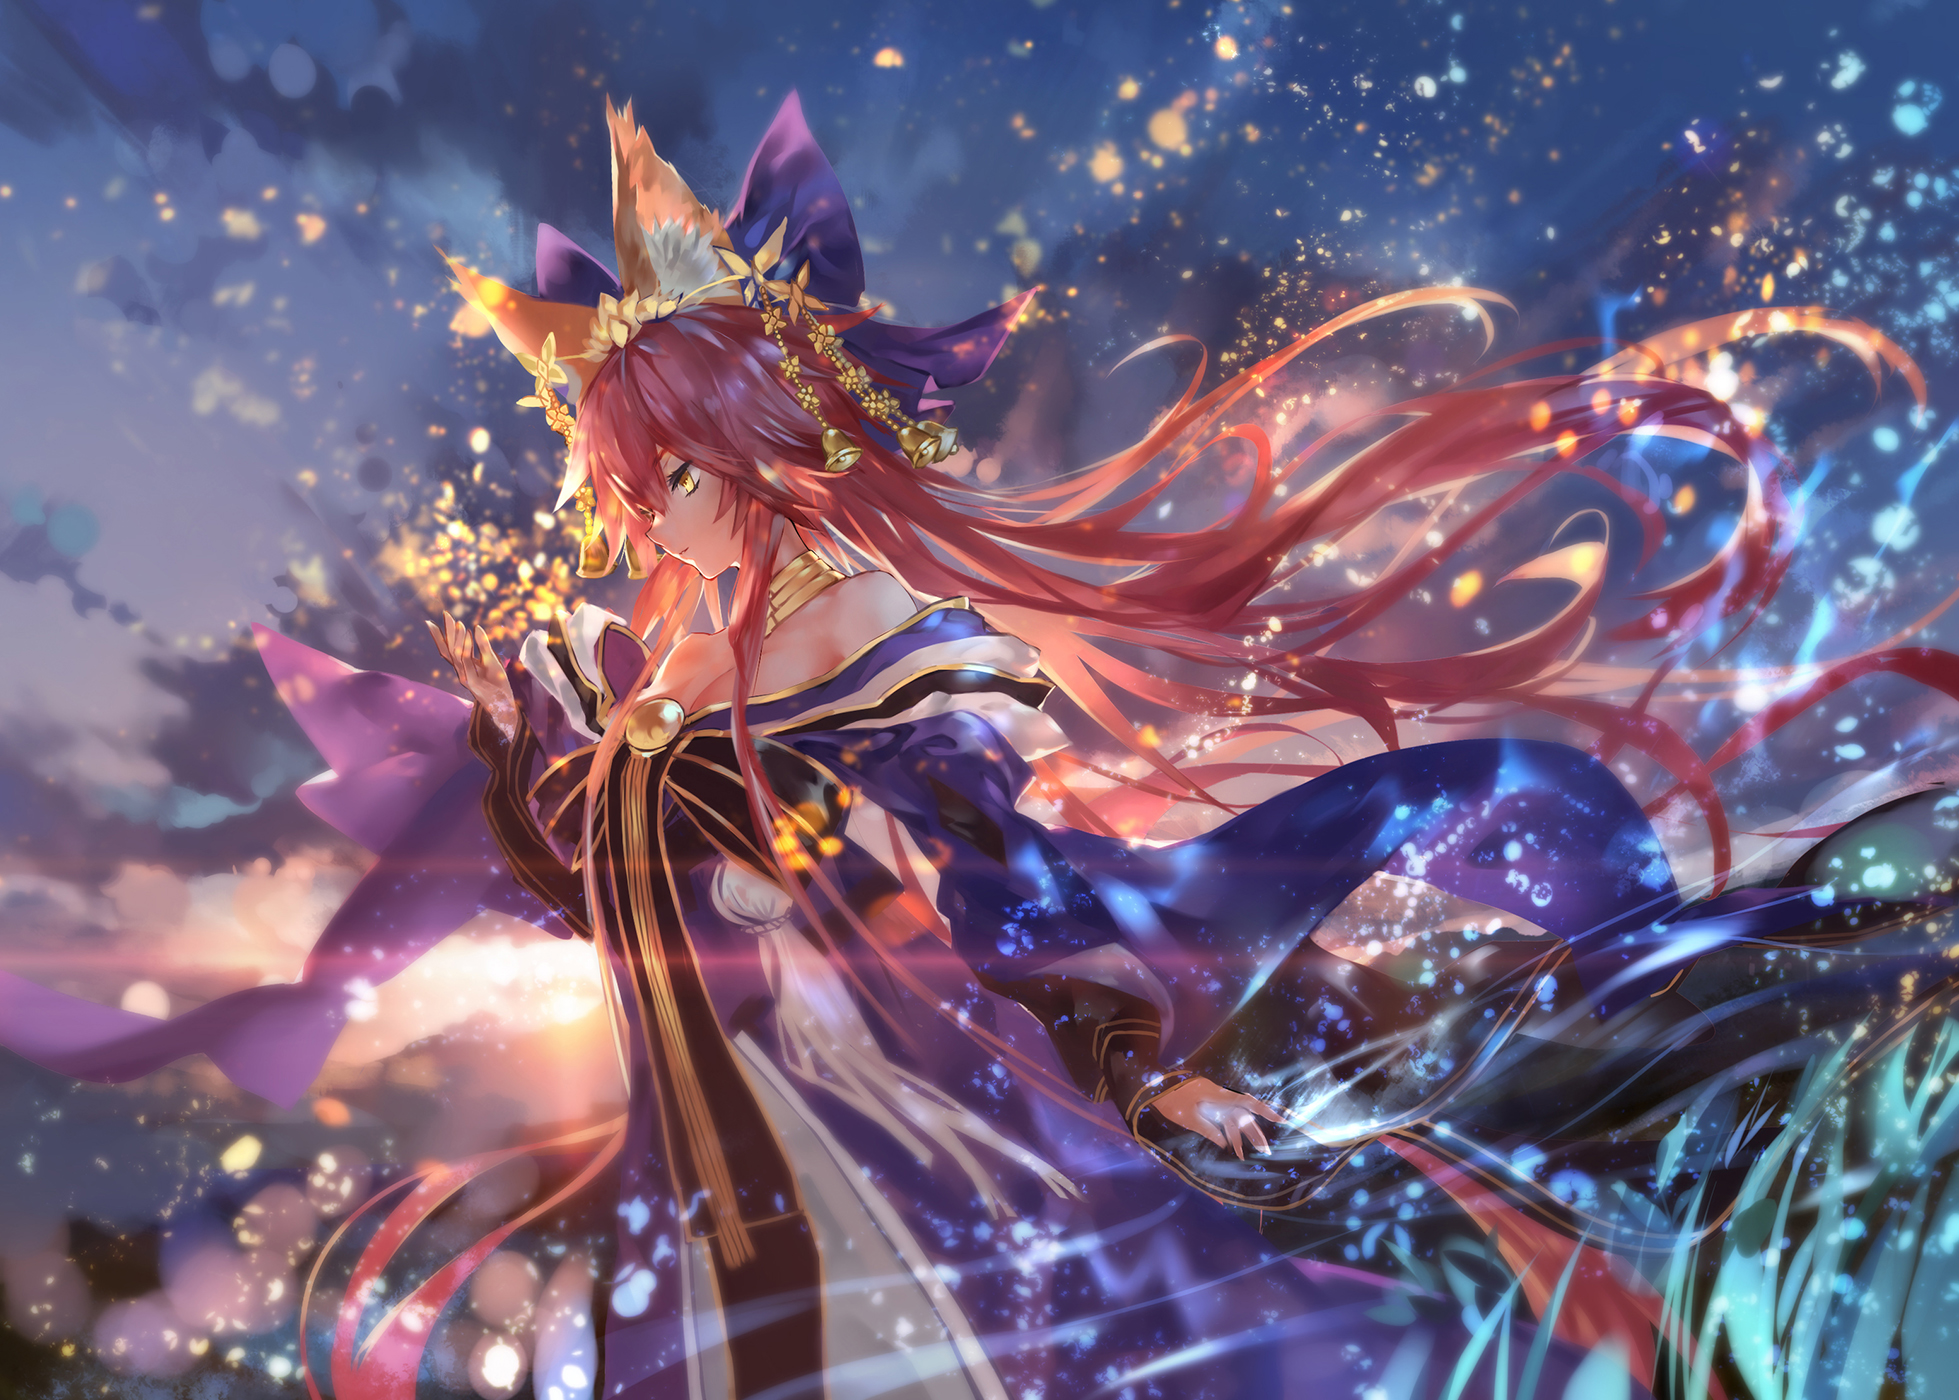 128 Fate Extra Hd Wallpapers Background Images Wallpaper Abyss